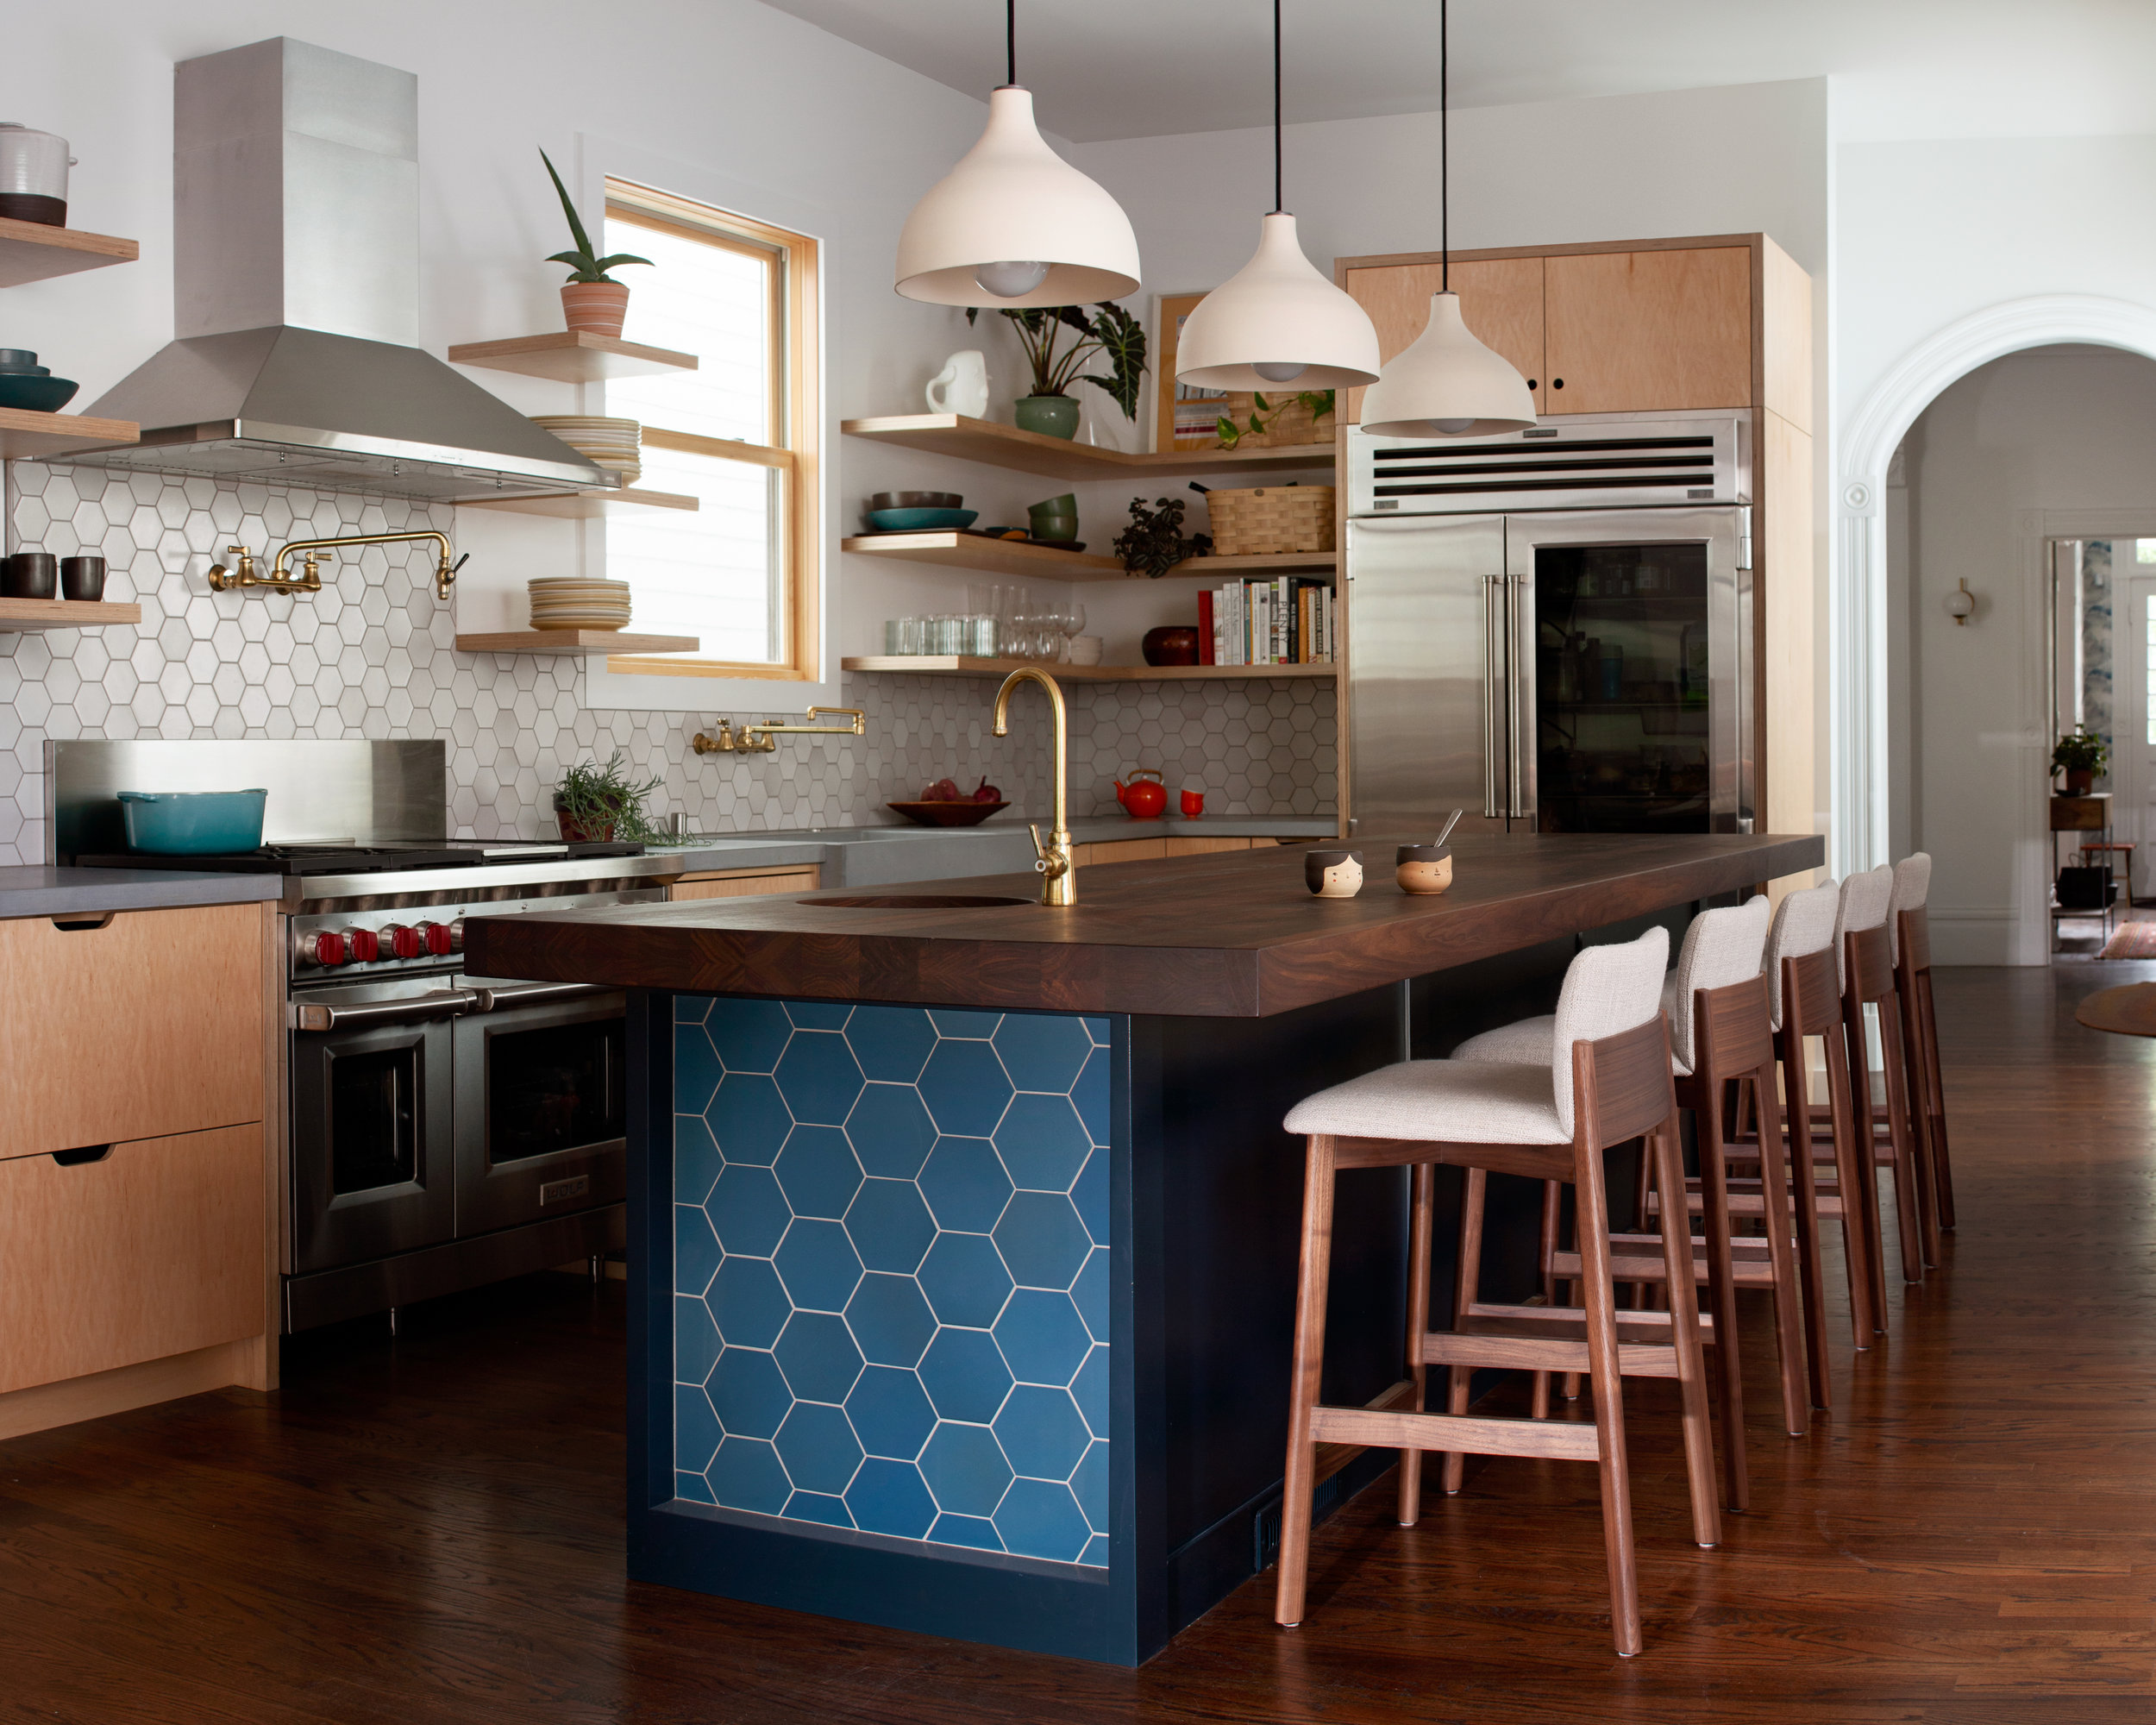 The new kitchen is now the favorite room of the house with more light, functionality and a stylish design. Craig added a beautiful new arch opening into the kitchen.